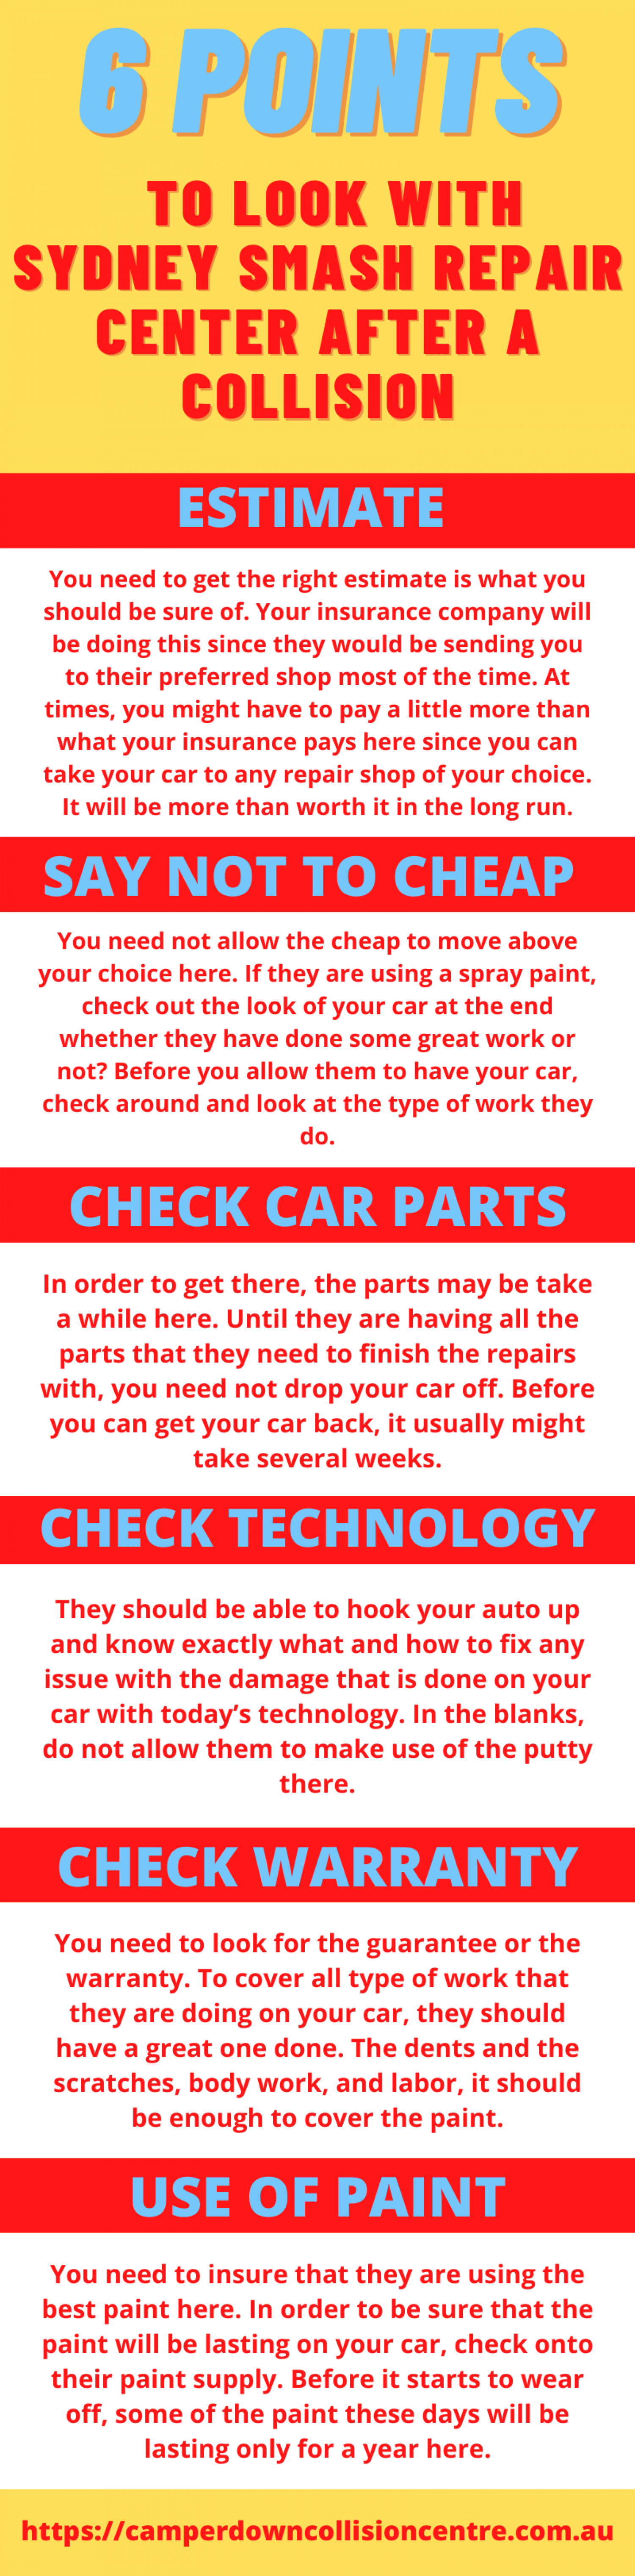 6 Points to Look with Sydney Smash Repairs Center After a Collision Infographic